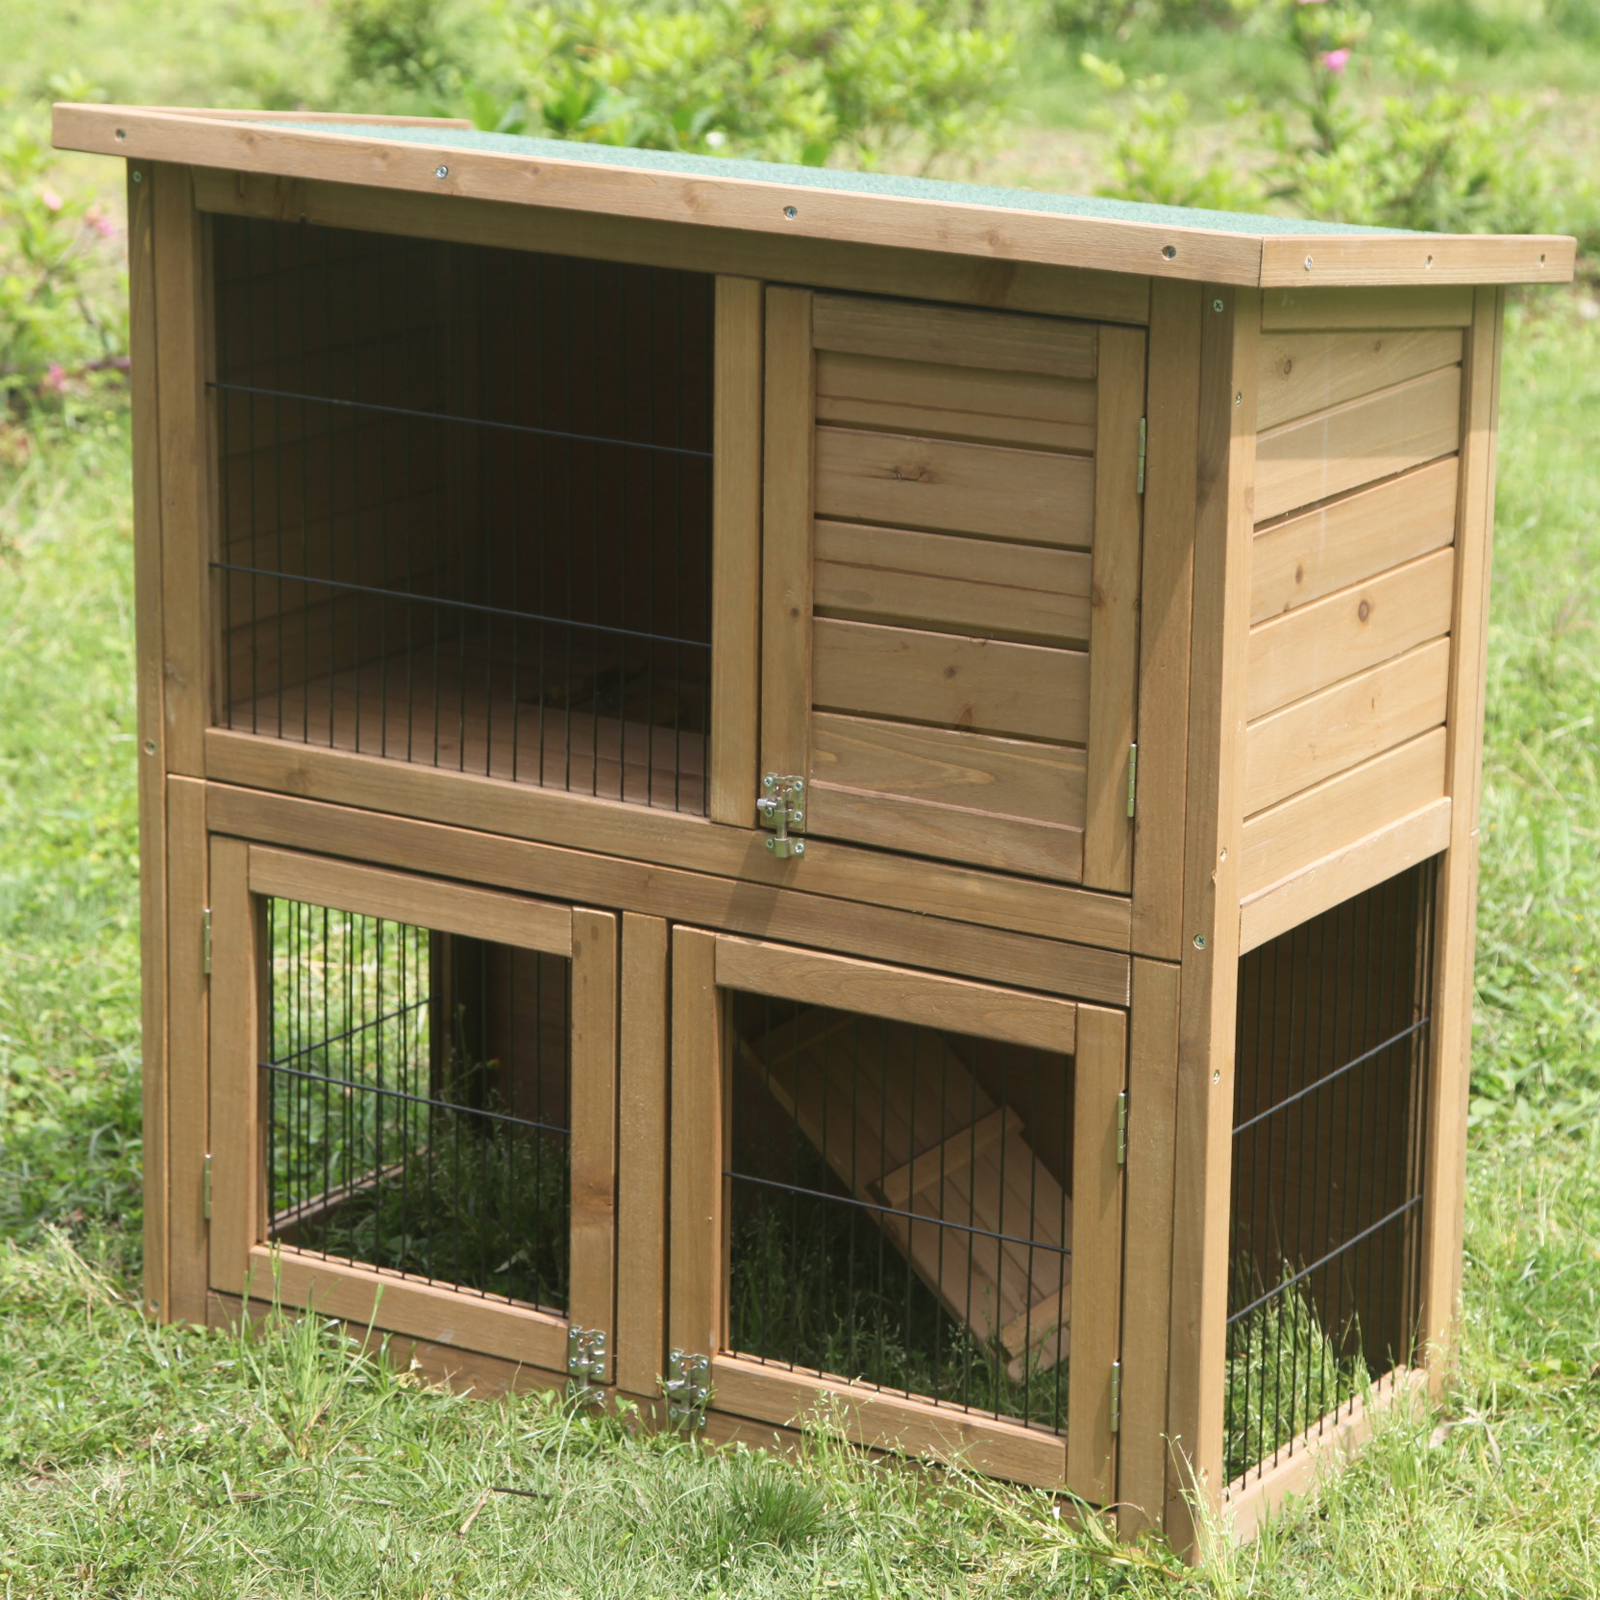 Large rabbit hutch wooden 2 tier pet cage house outdoor for 2 rabbit hutch